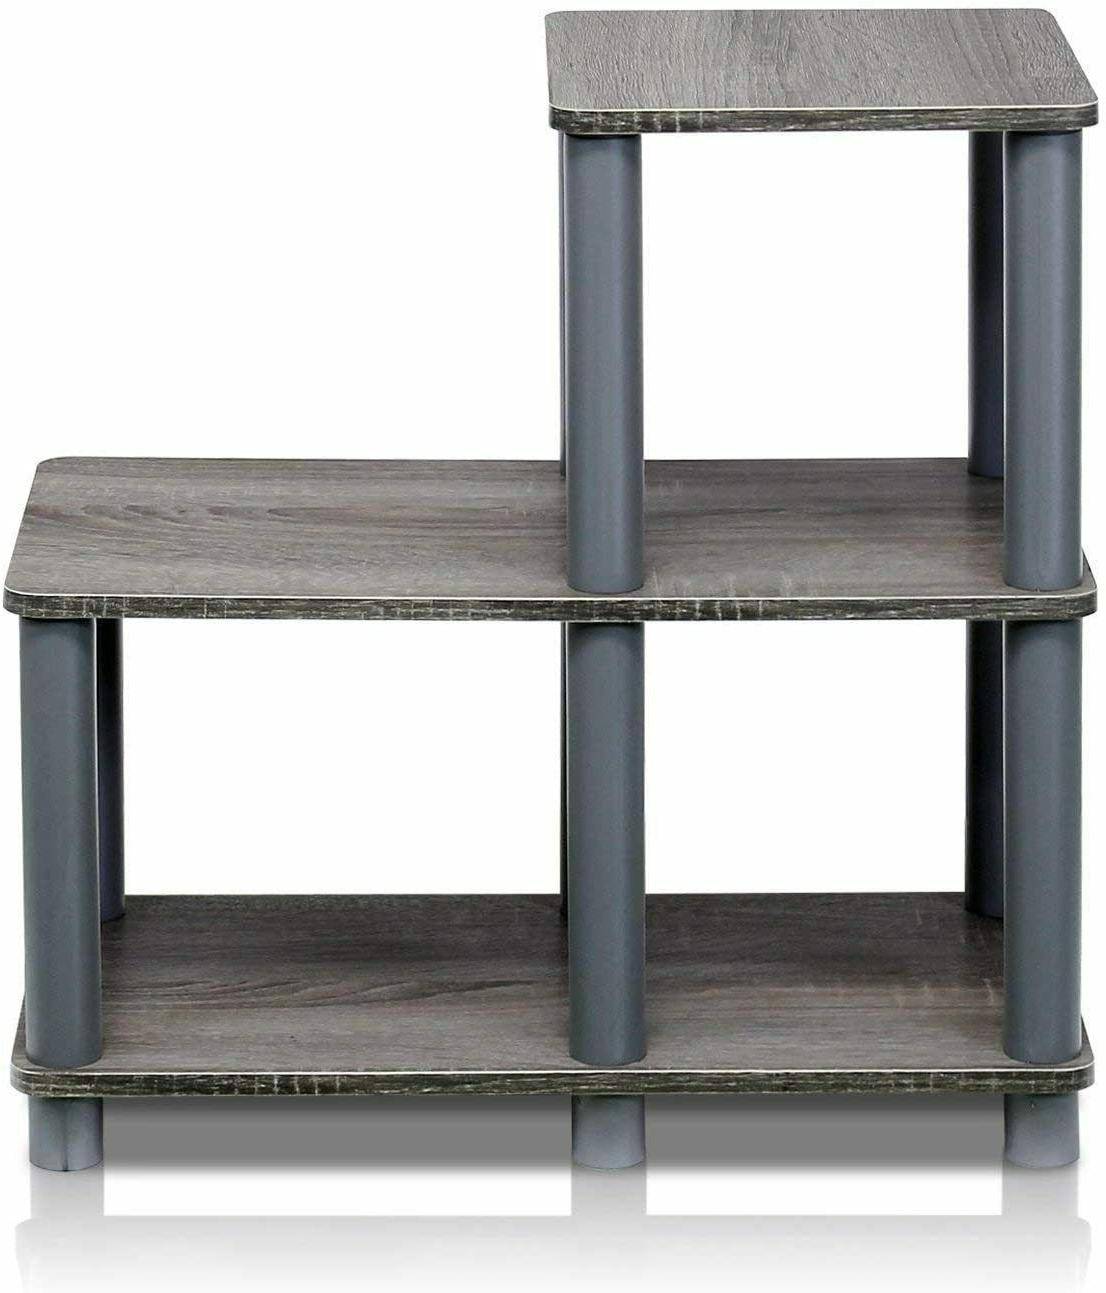 3-Tier End Side Table Night Stand with Storage Shelf Bedroom